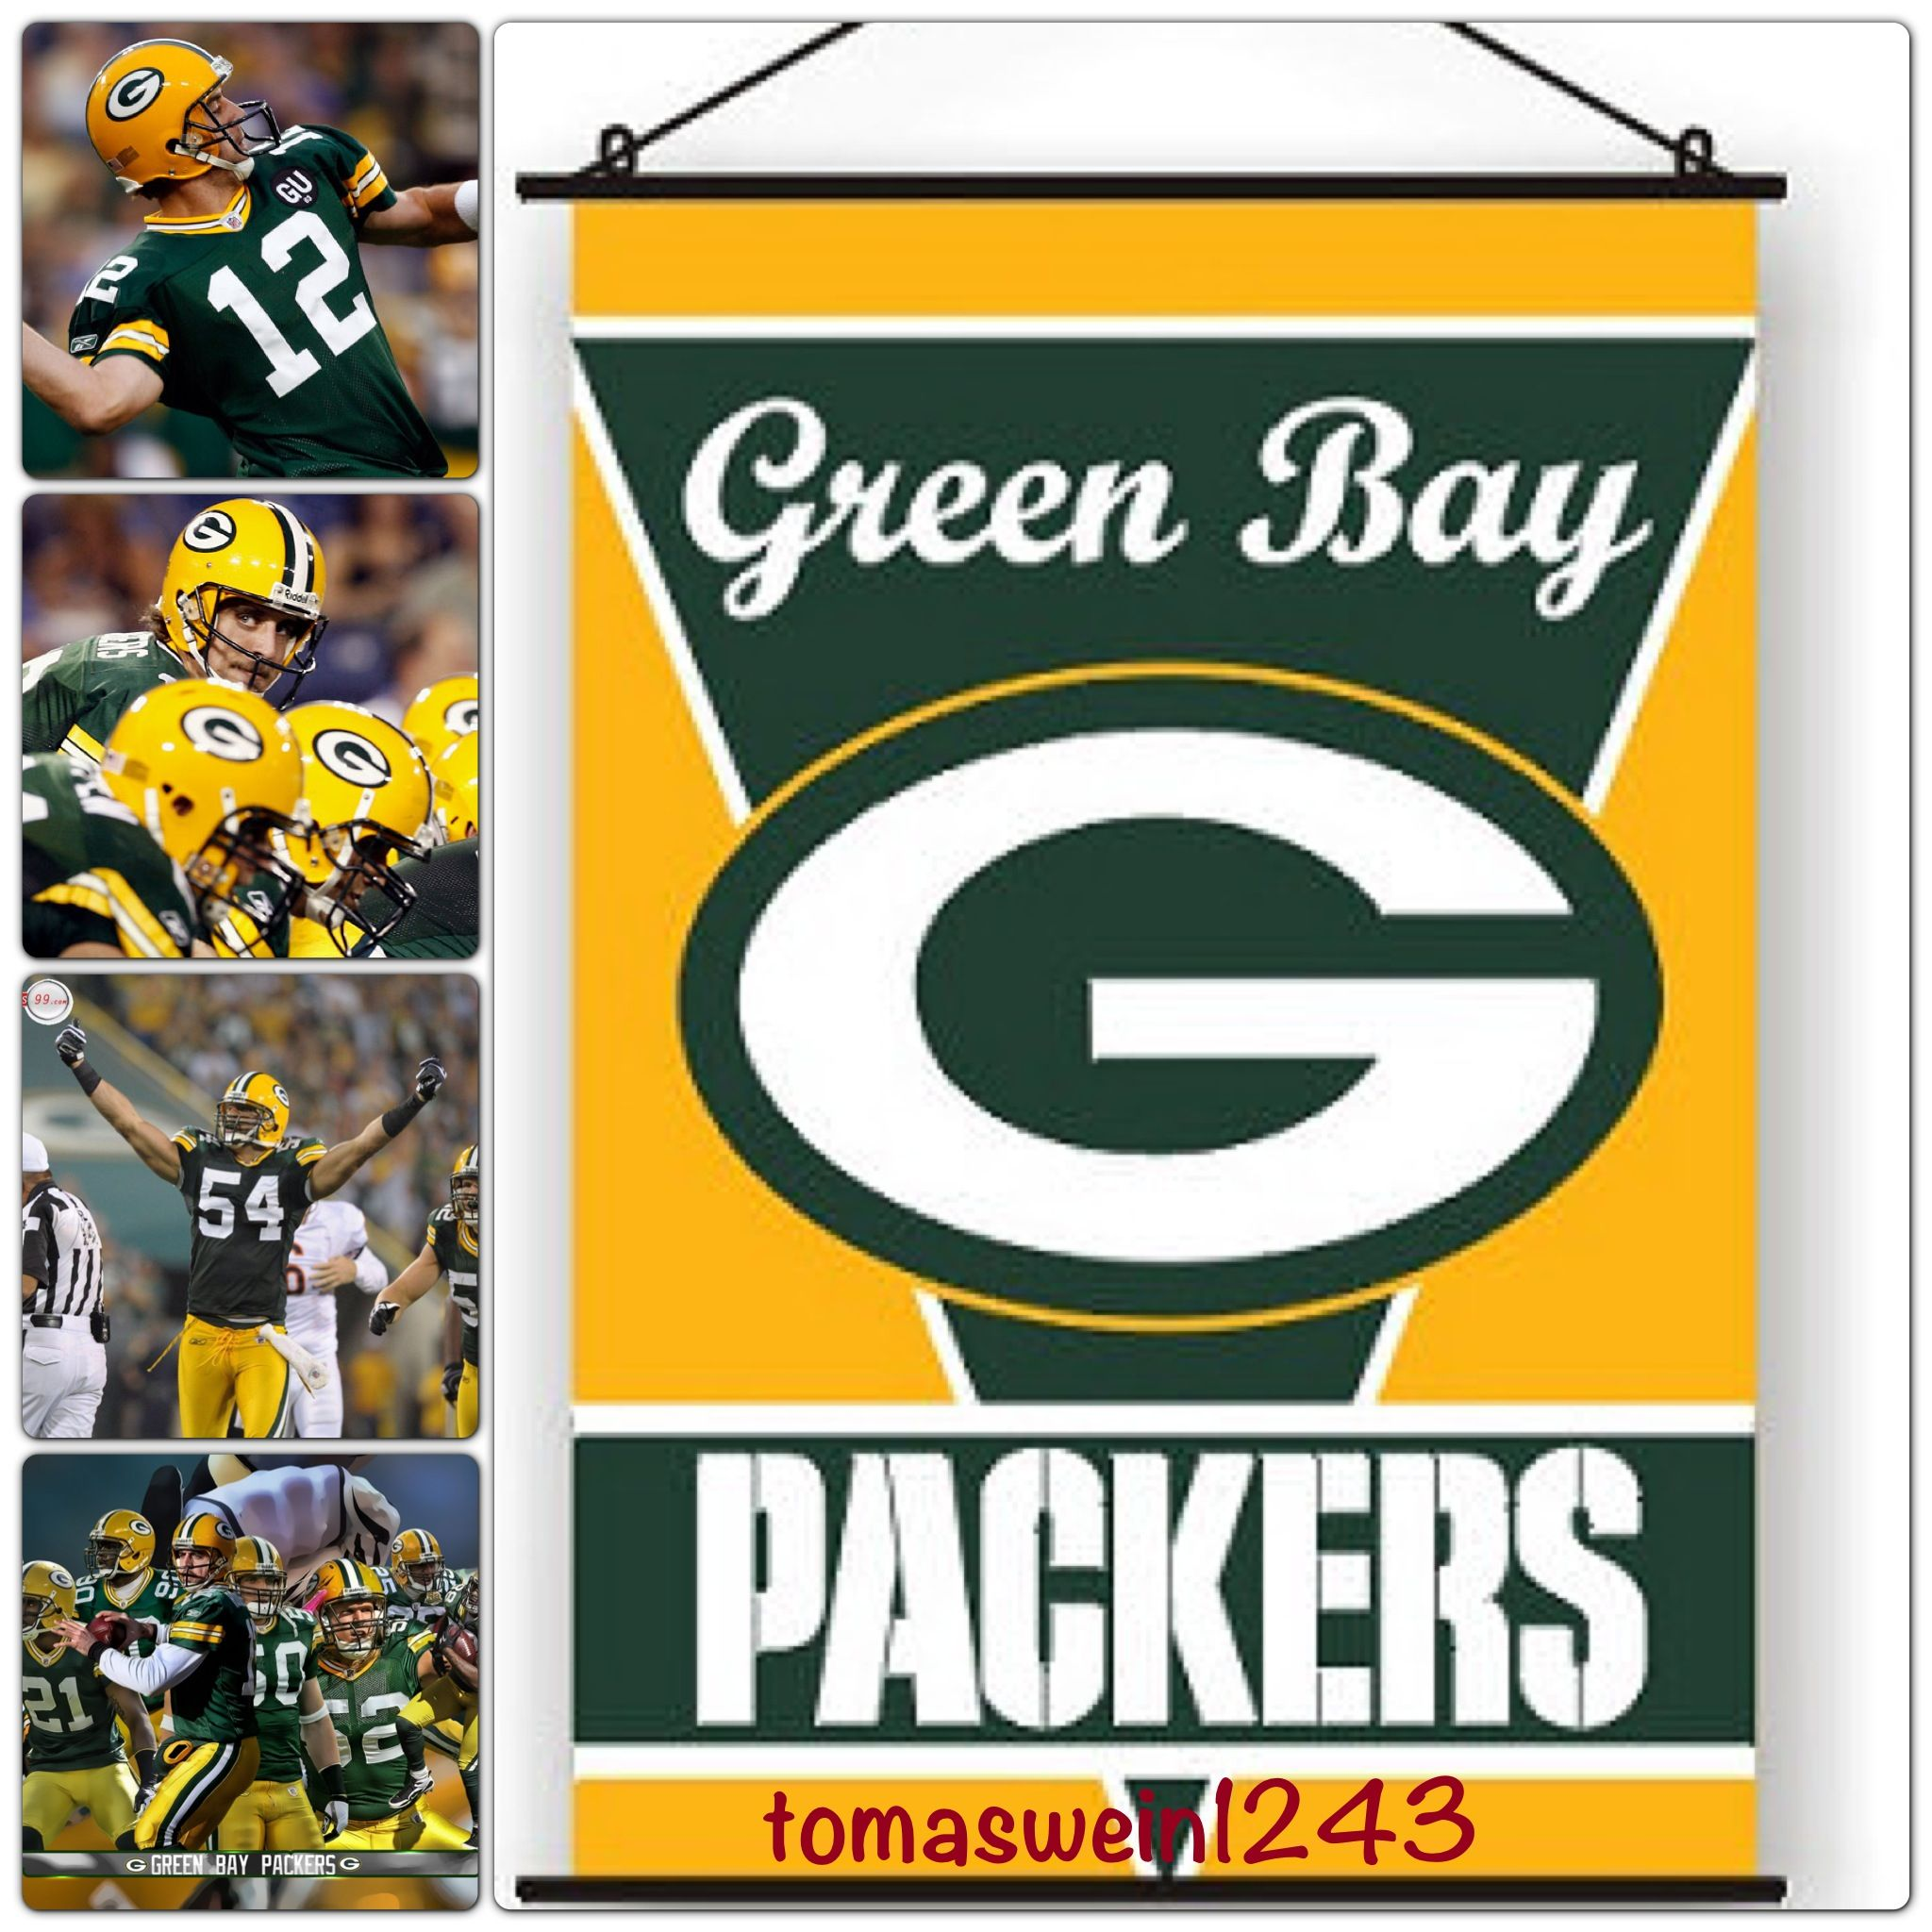 My Edit For The Green Bay Packers Green Bay Packers Fans Green Bay Packers Colors Nfl Green Bay